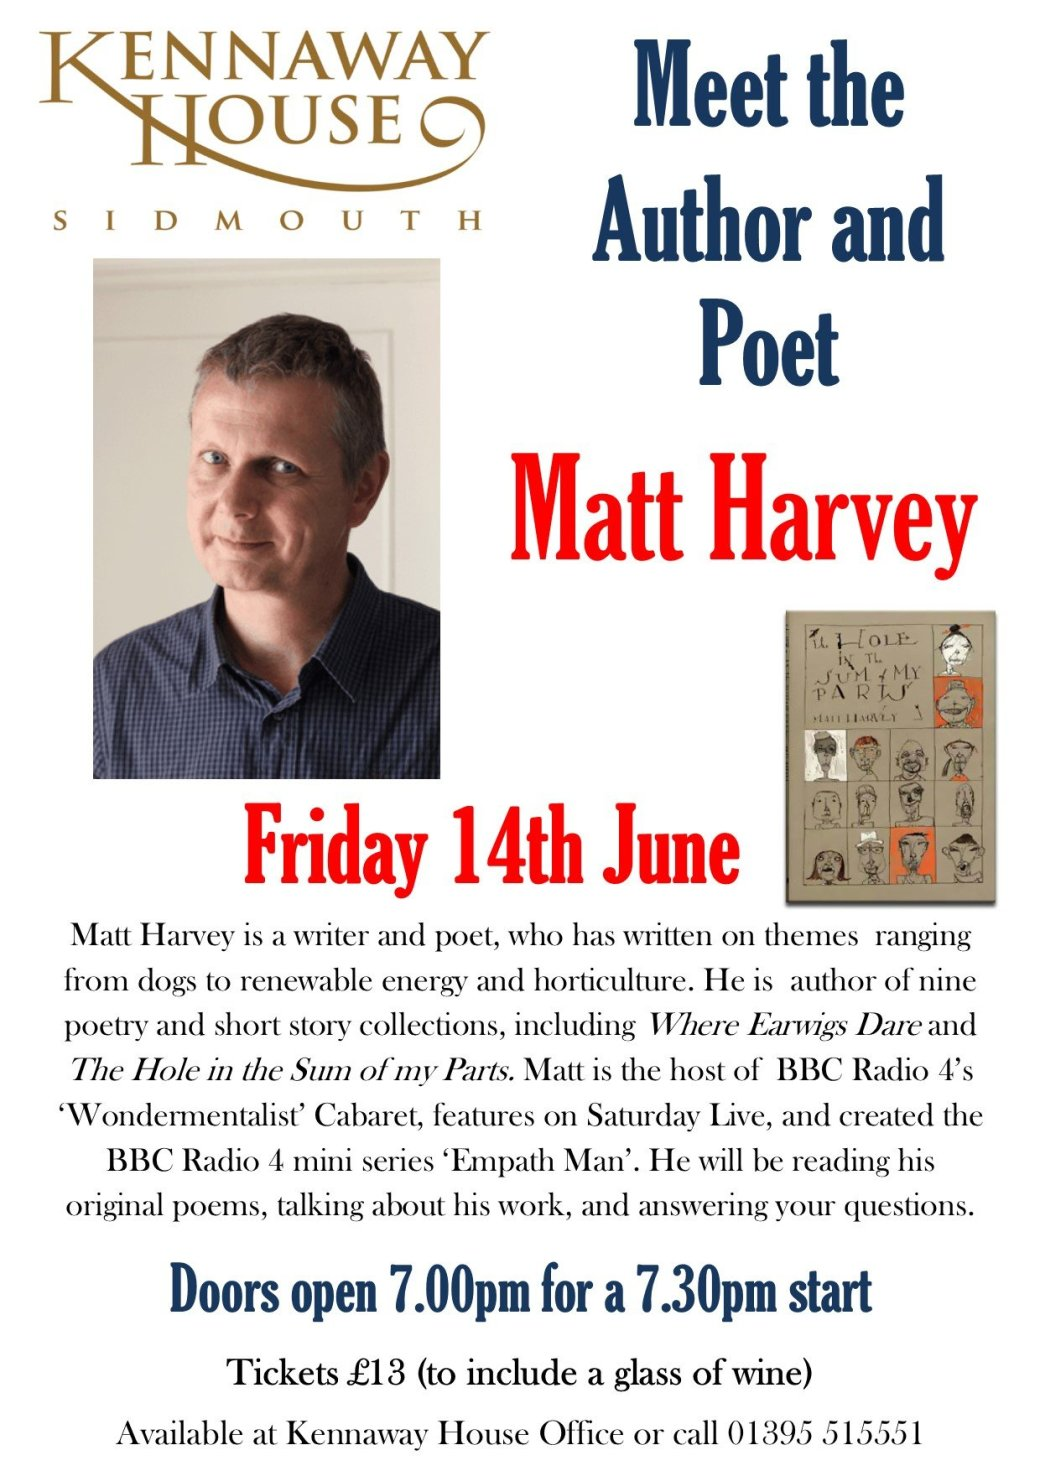 Meet the Author and Poet Matt Harvey BBC Radio 4 Kennaway House Sidmouth